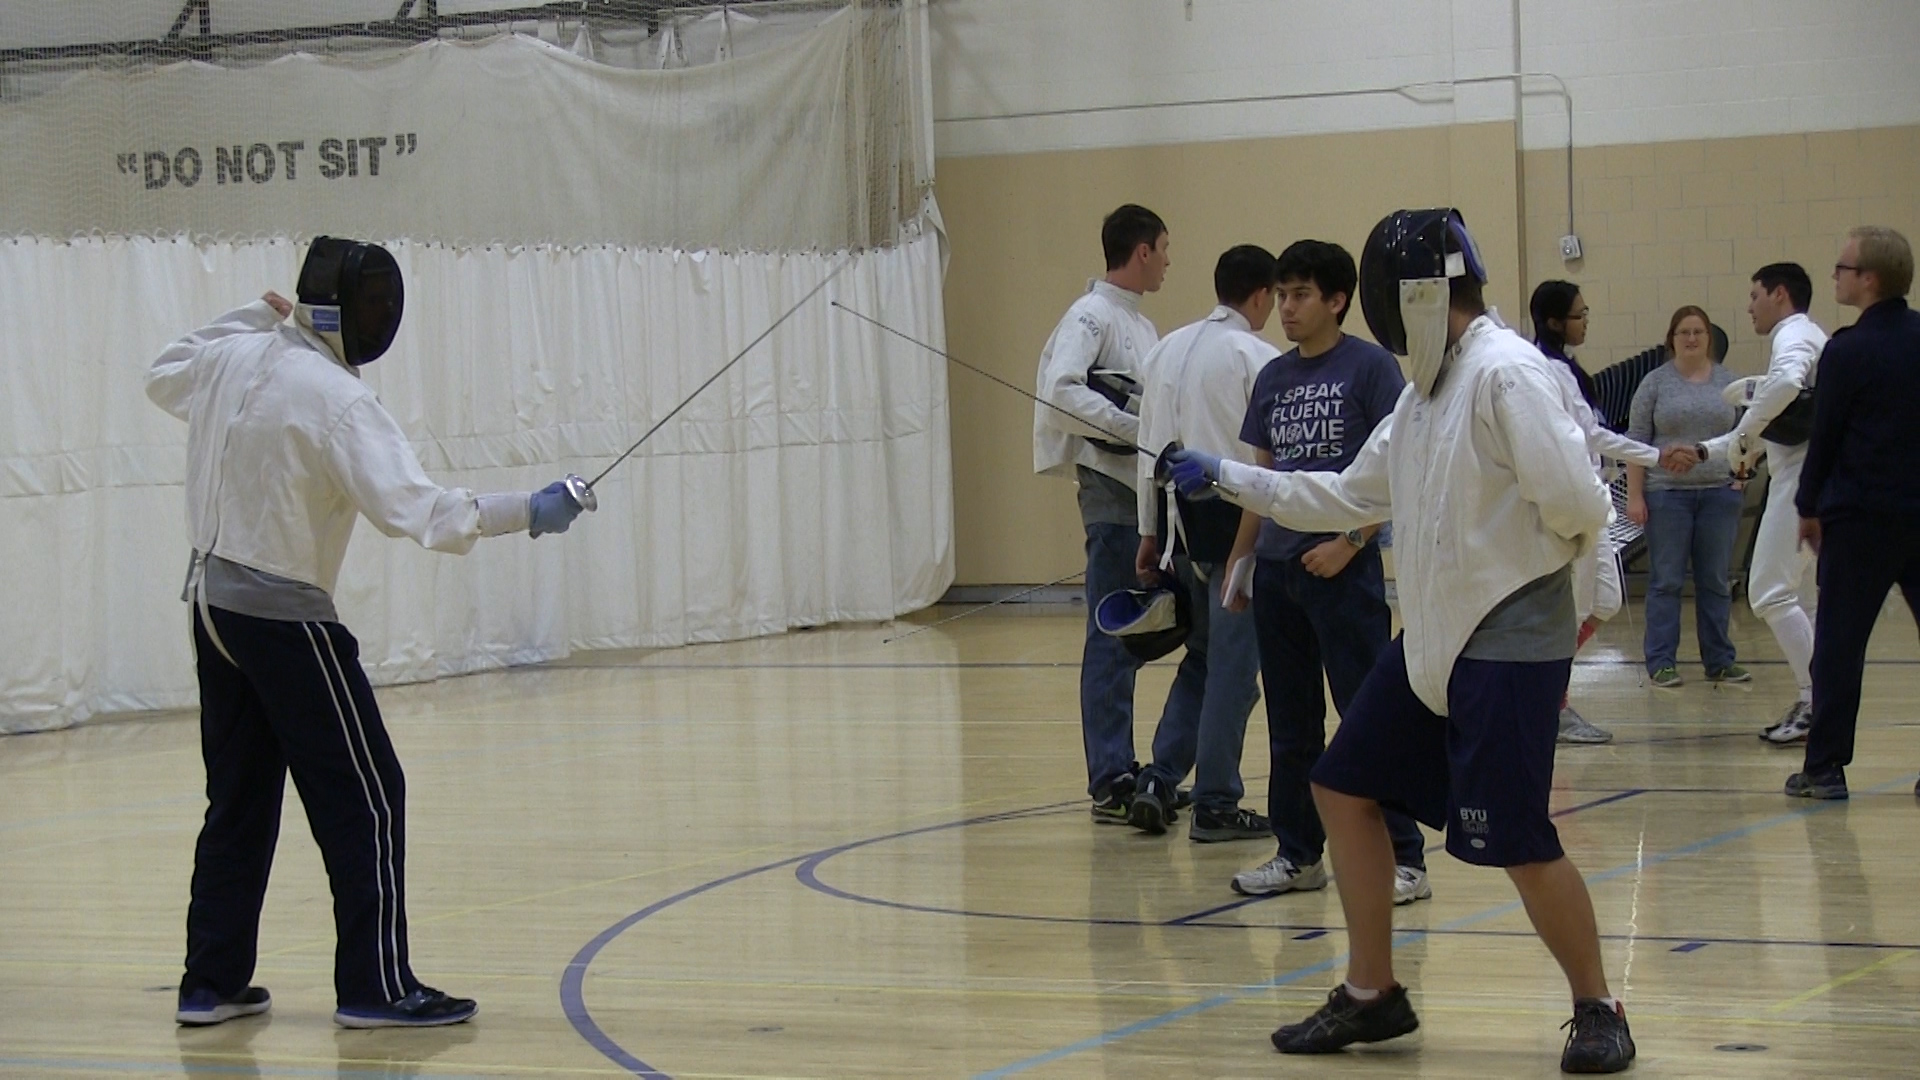 Students take a stab at fencing